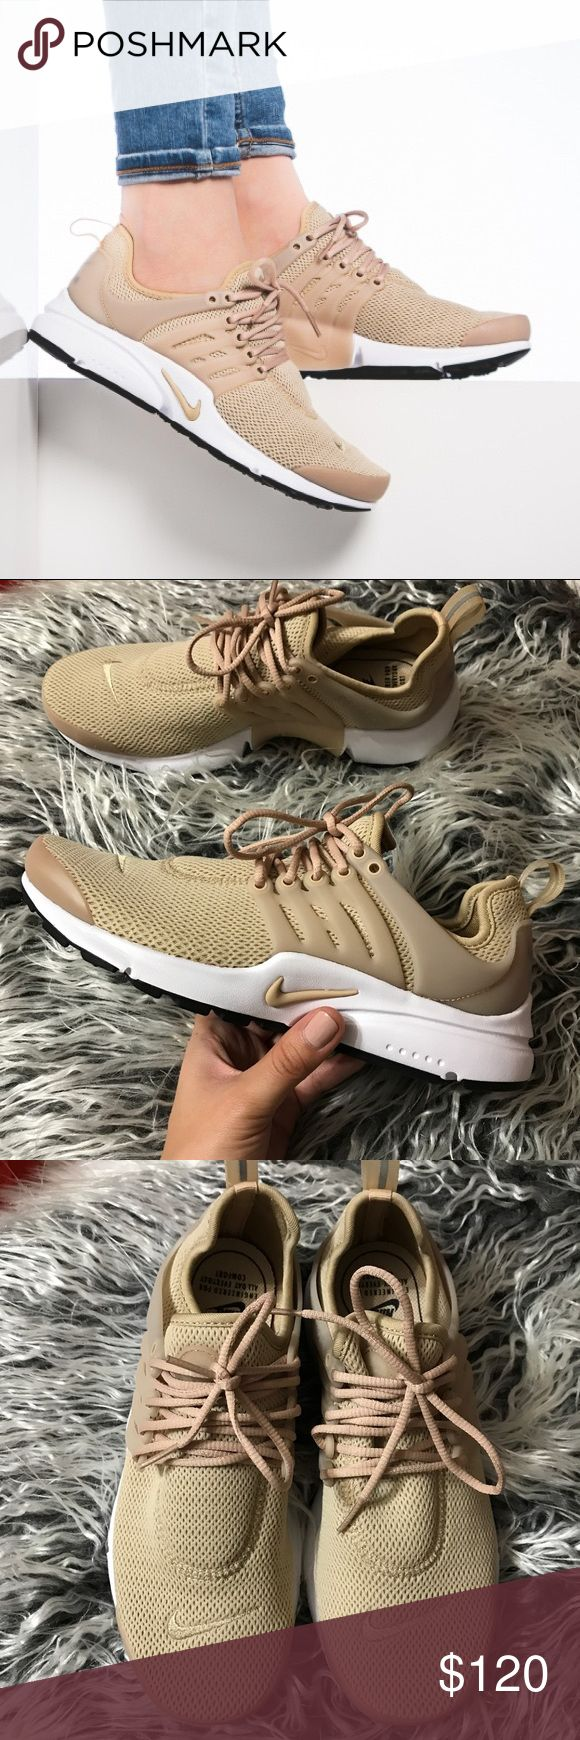 Nike Air Presto Oatmeal Brand new with the box but no lid. Super cute and on trend! Very comfy. SOLD OUT EVERY WHERE Nike Shoes Athletic Shoes